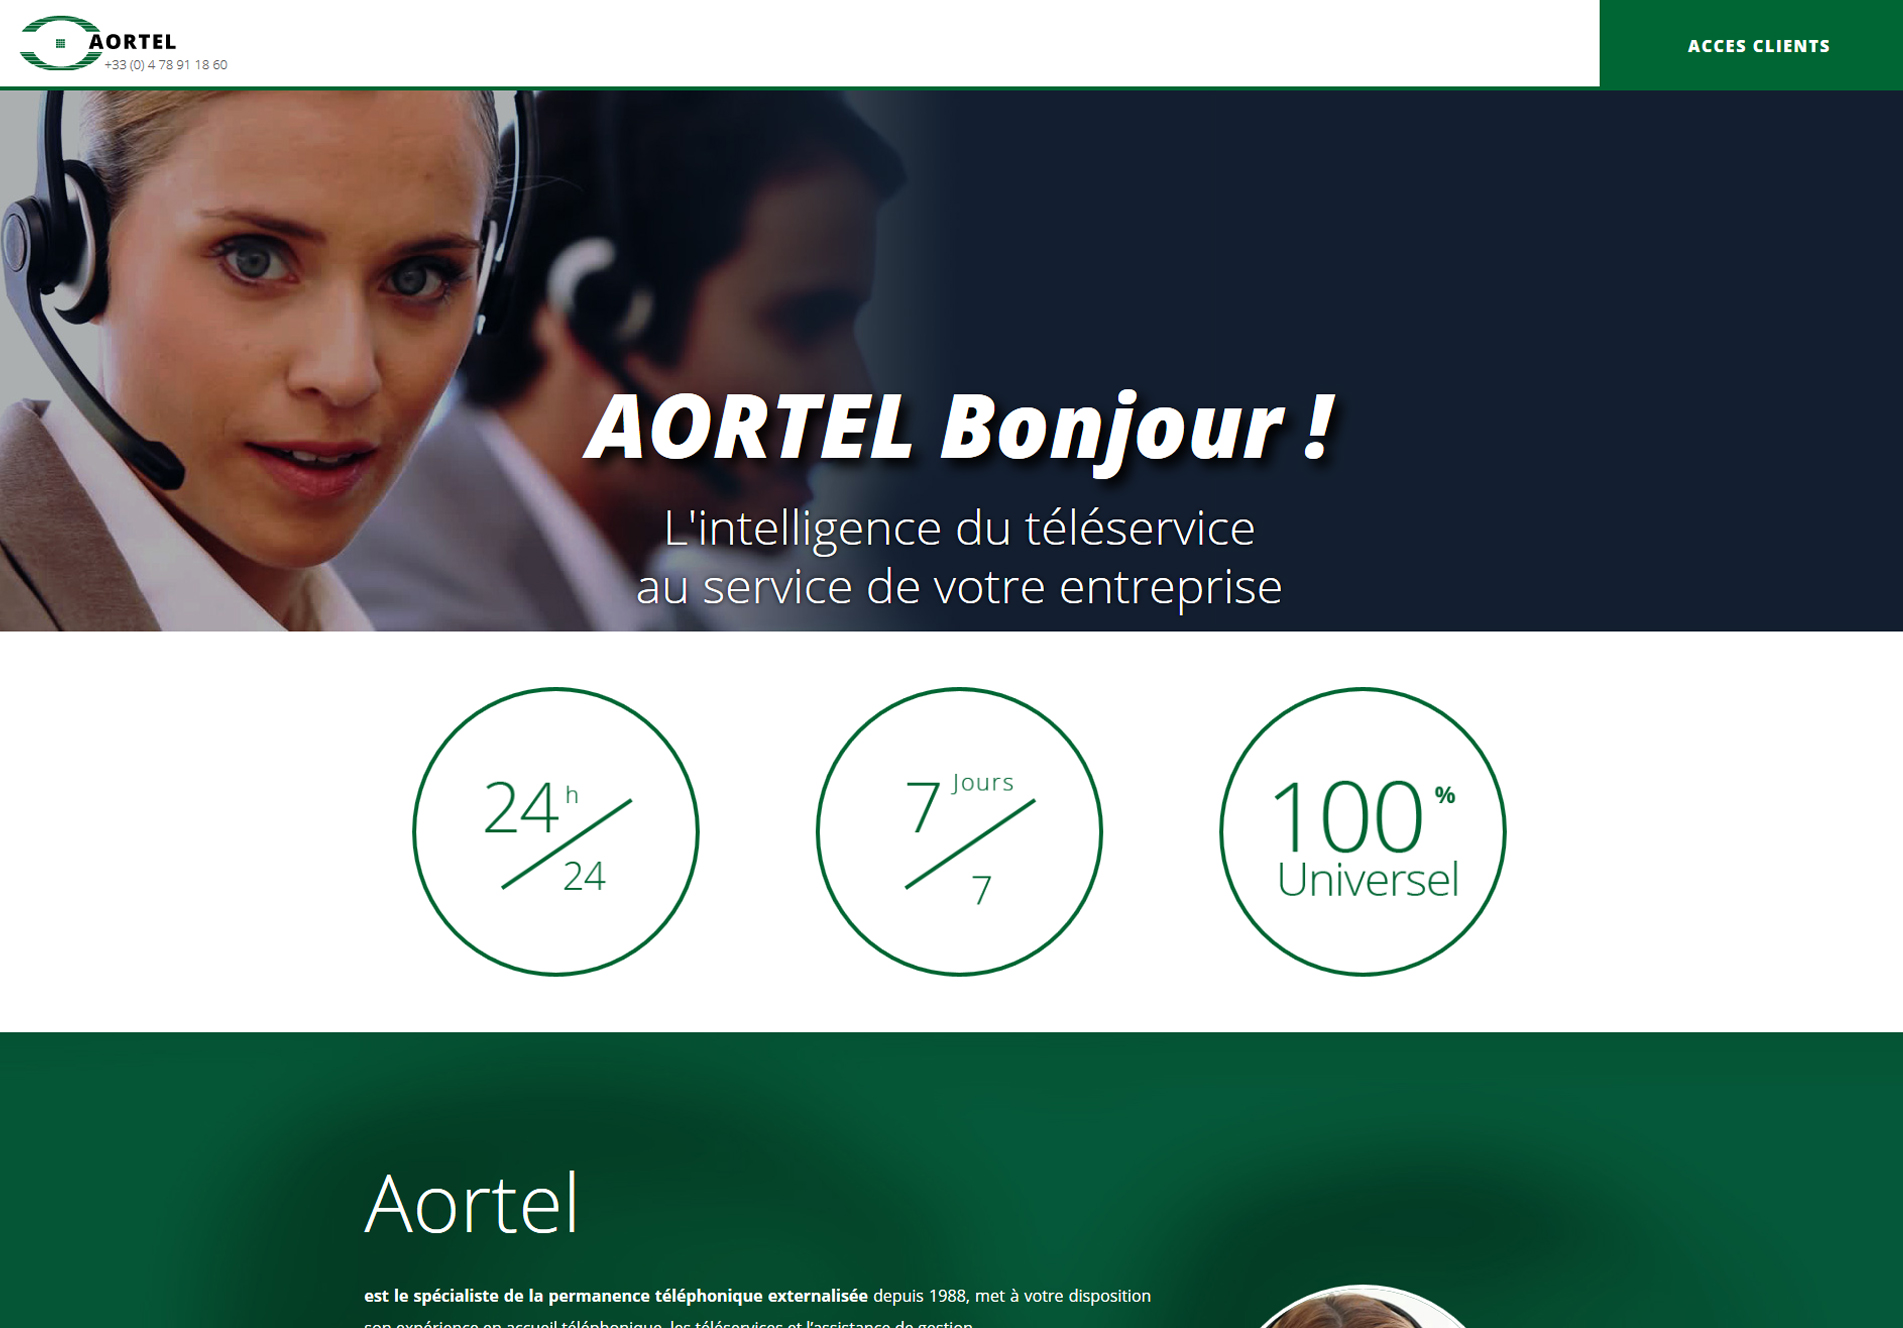 Aortel - cmcgraphiste - Christian-Michel CHAMPON